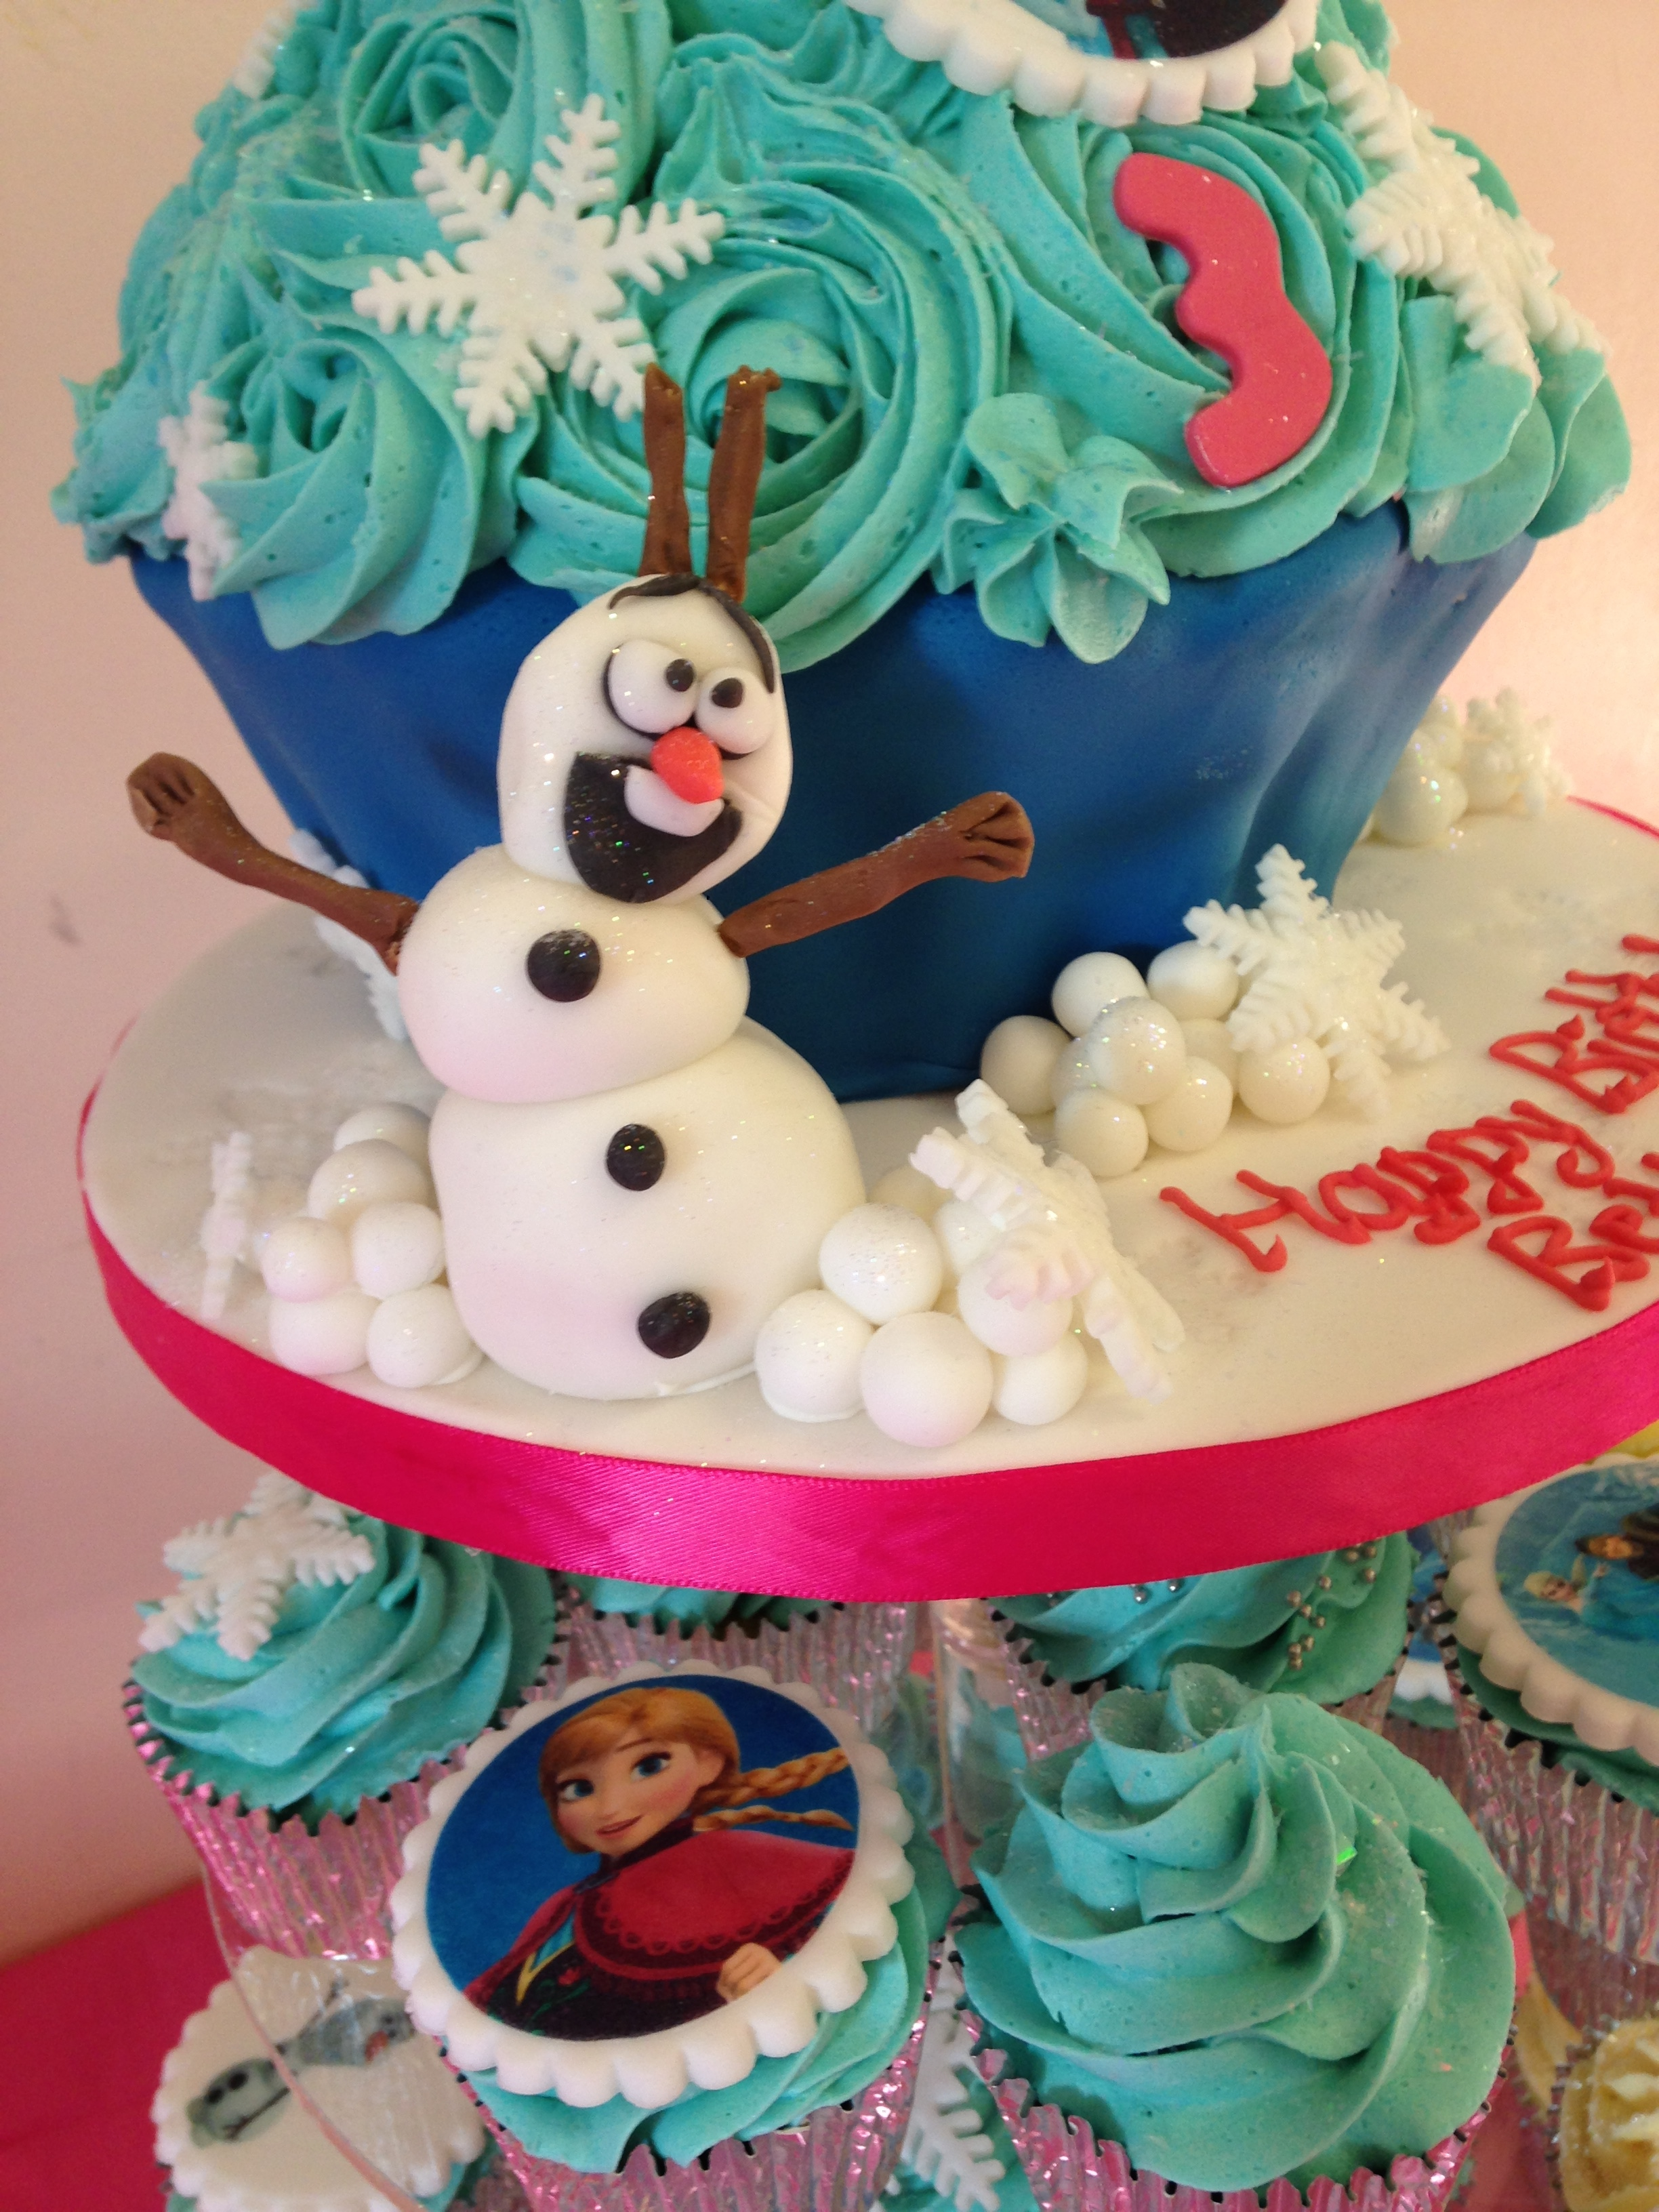 Frozen Giant Cupcake and Cupcakes